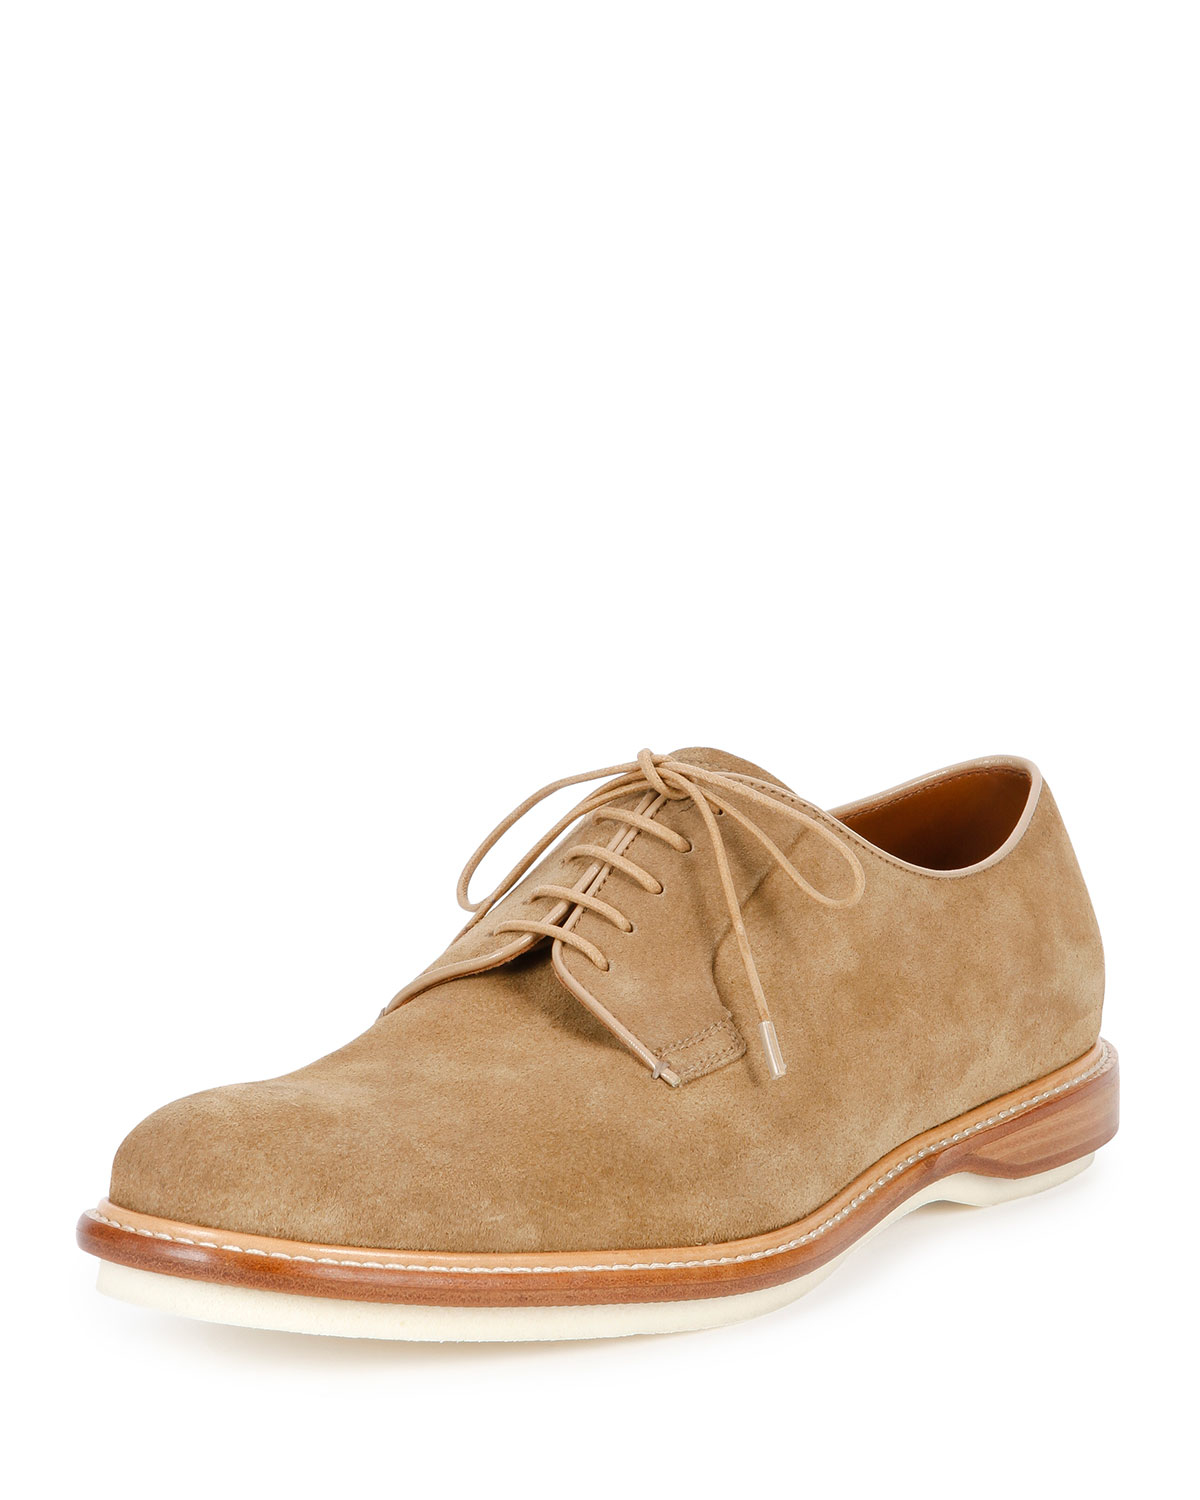 Bally Steve Suede Derby Shoe In Natural For Men Lyst